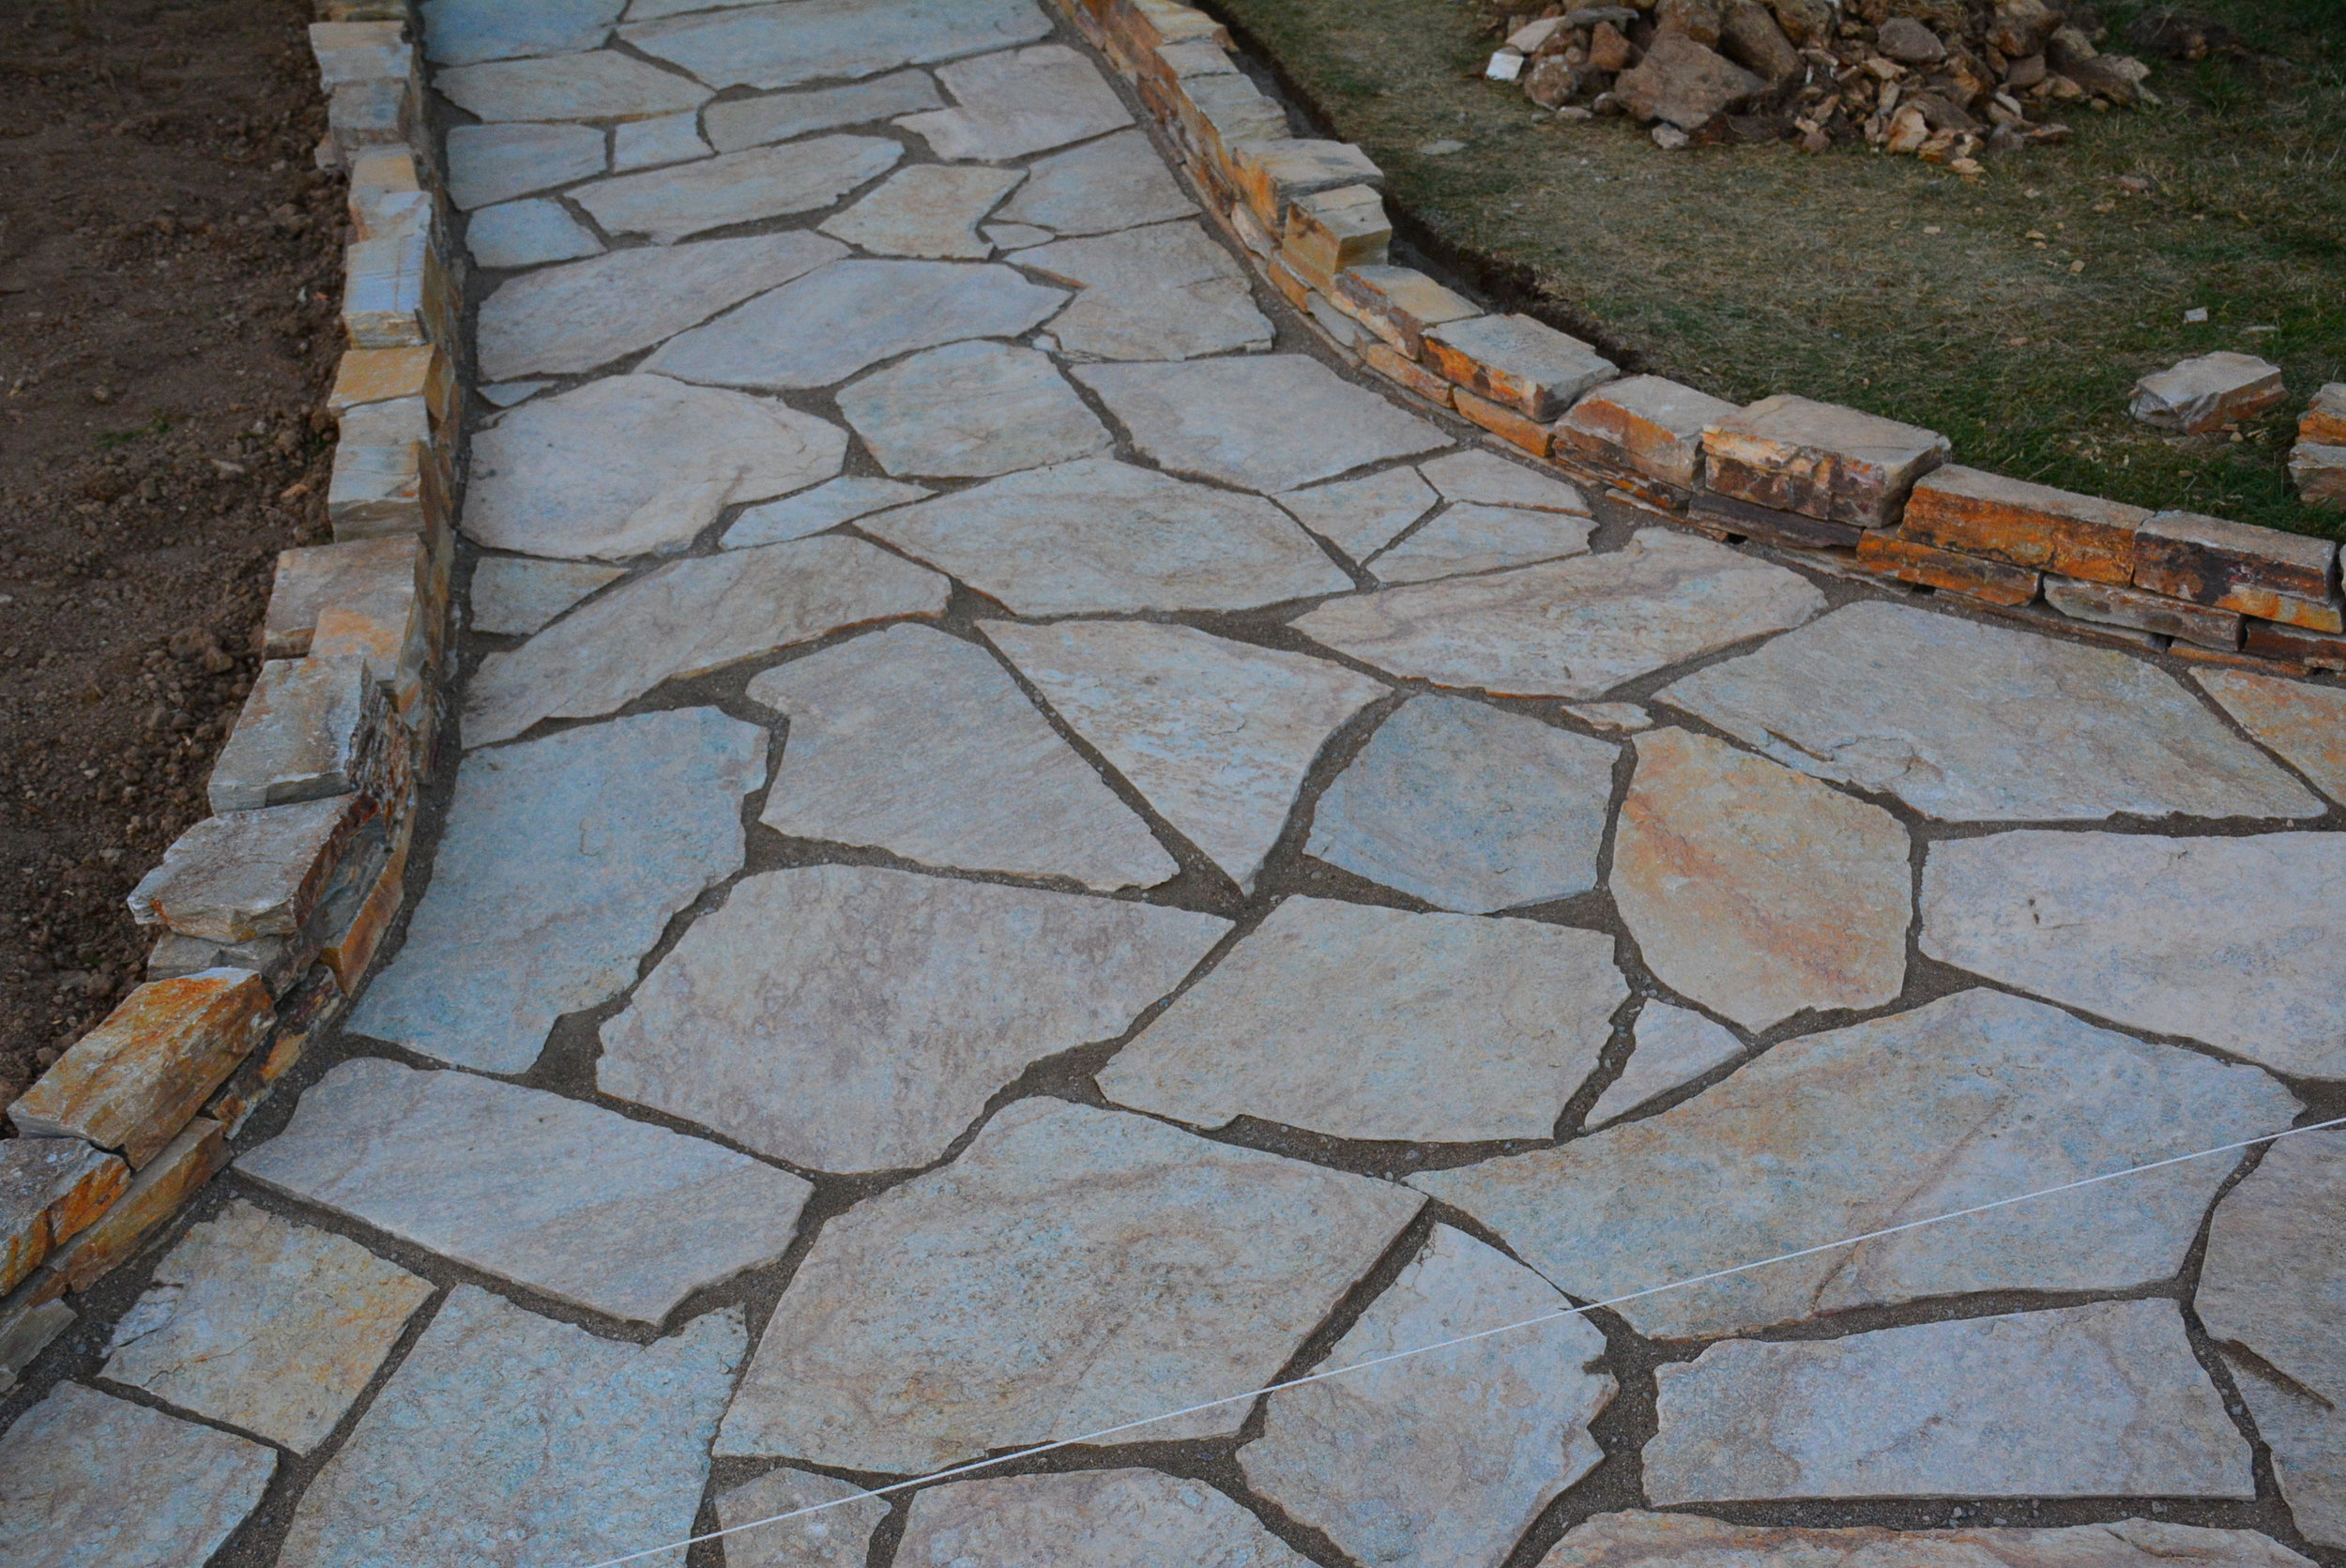 4/29/17- Loving how the flagstone turned out